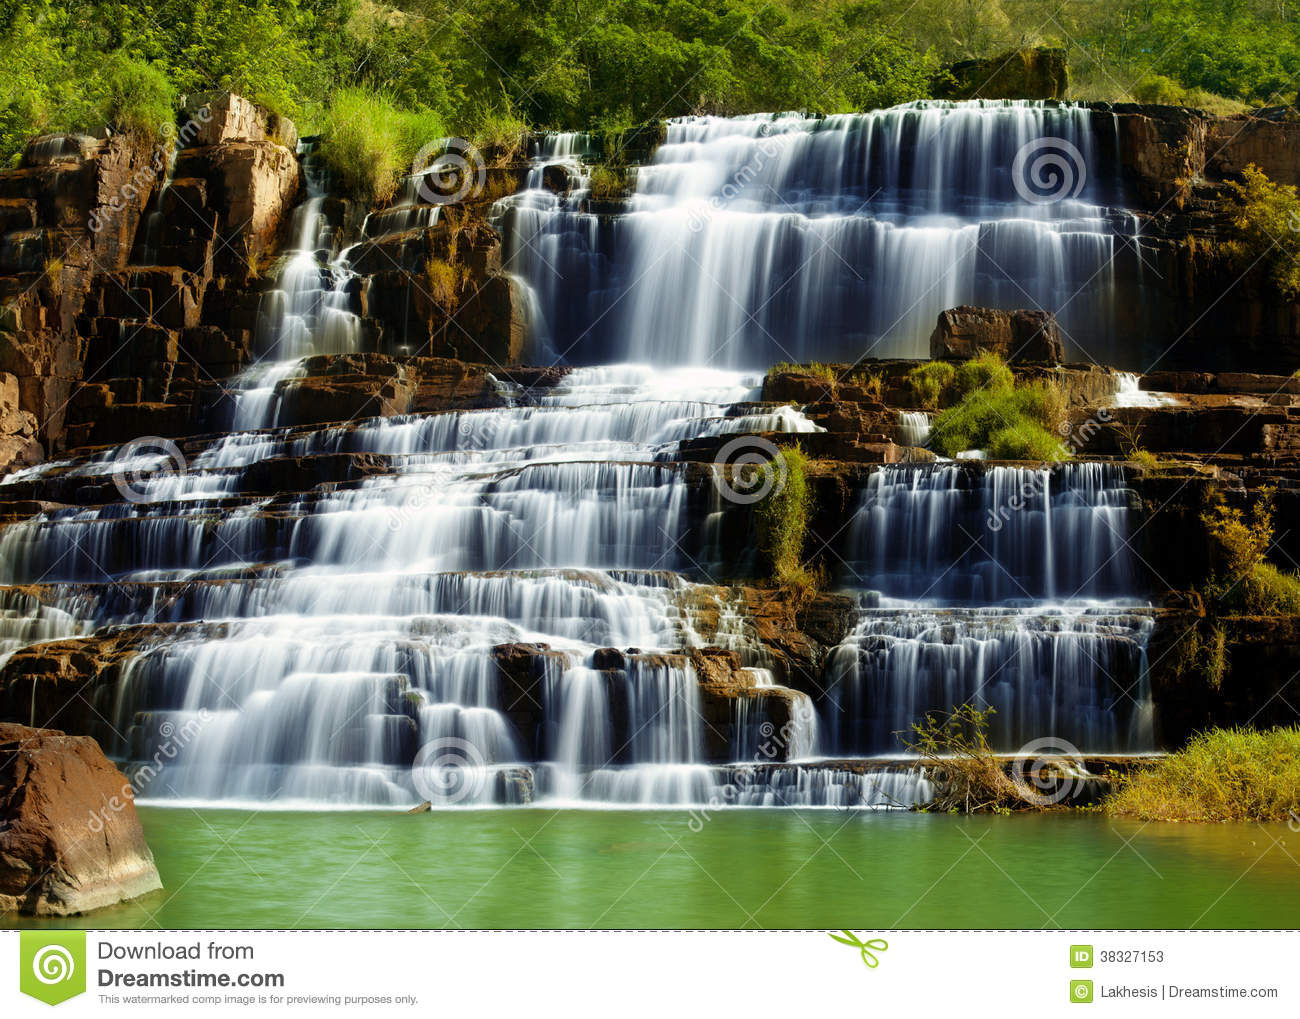 Fall Landscape Wallpapers Free Pongour Waterfall In Vietnam Stock Image Image Of Fall